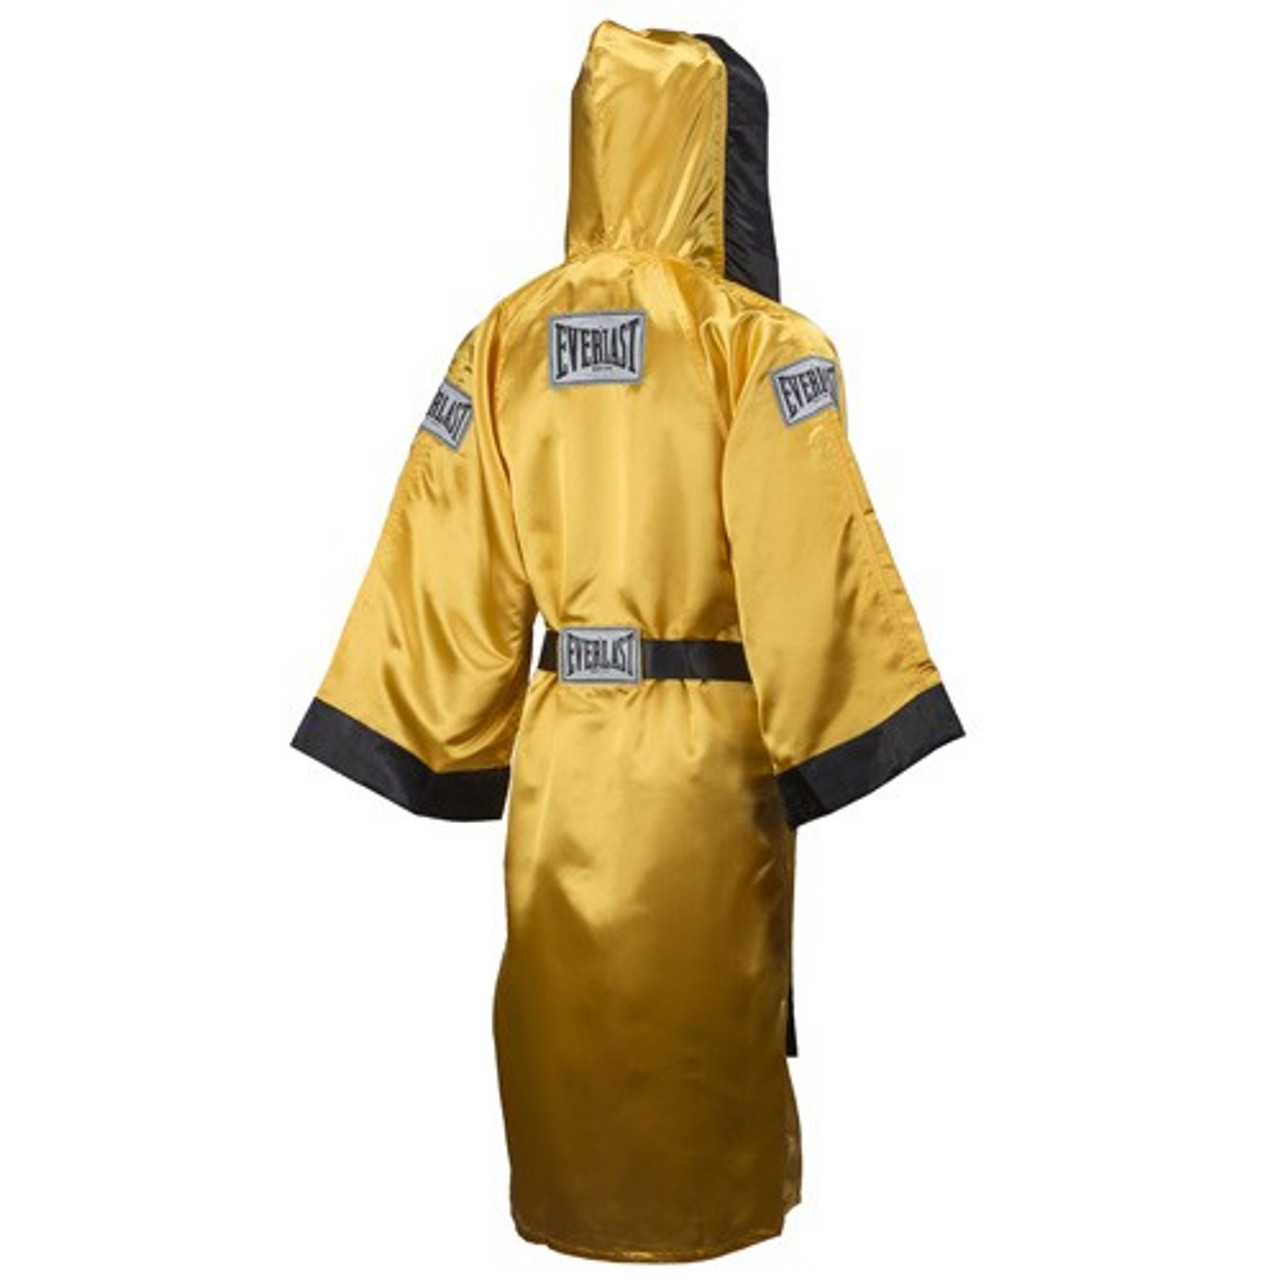 Personalised Boxing Robes: Personalized Everlast Boxing Full Length Robe With Hood